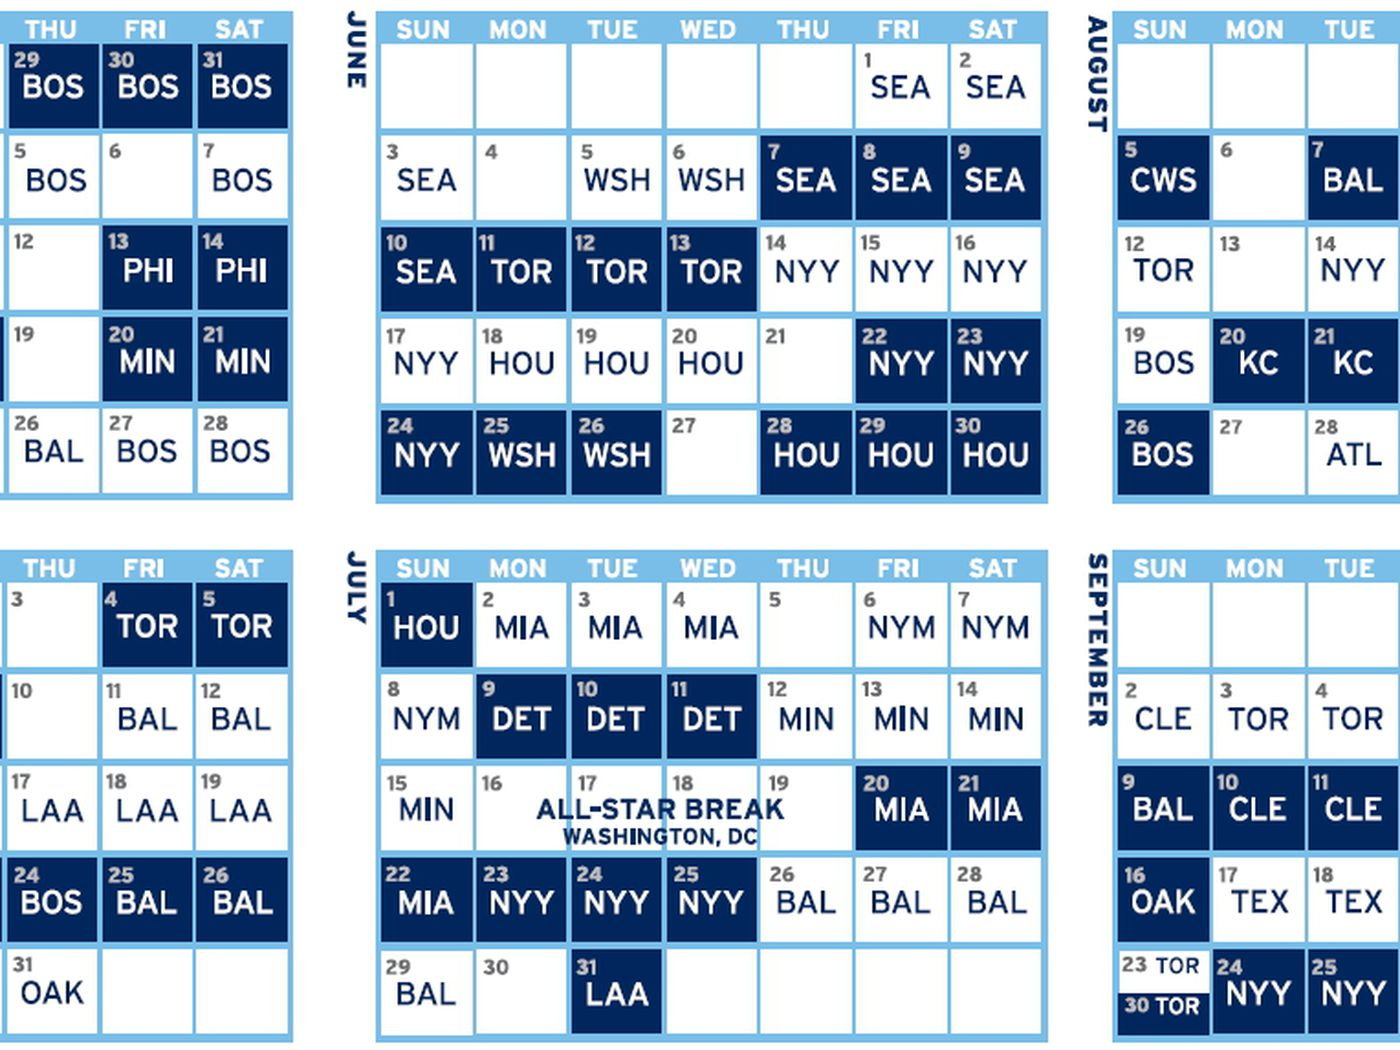 Tampa Bay Rays release 2018 schedule - DRaysBay